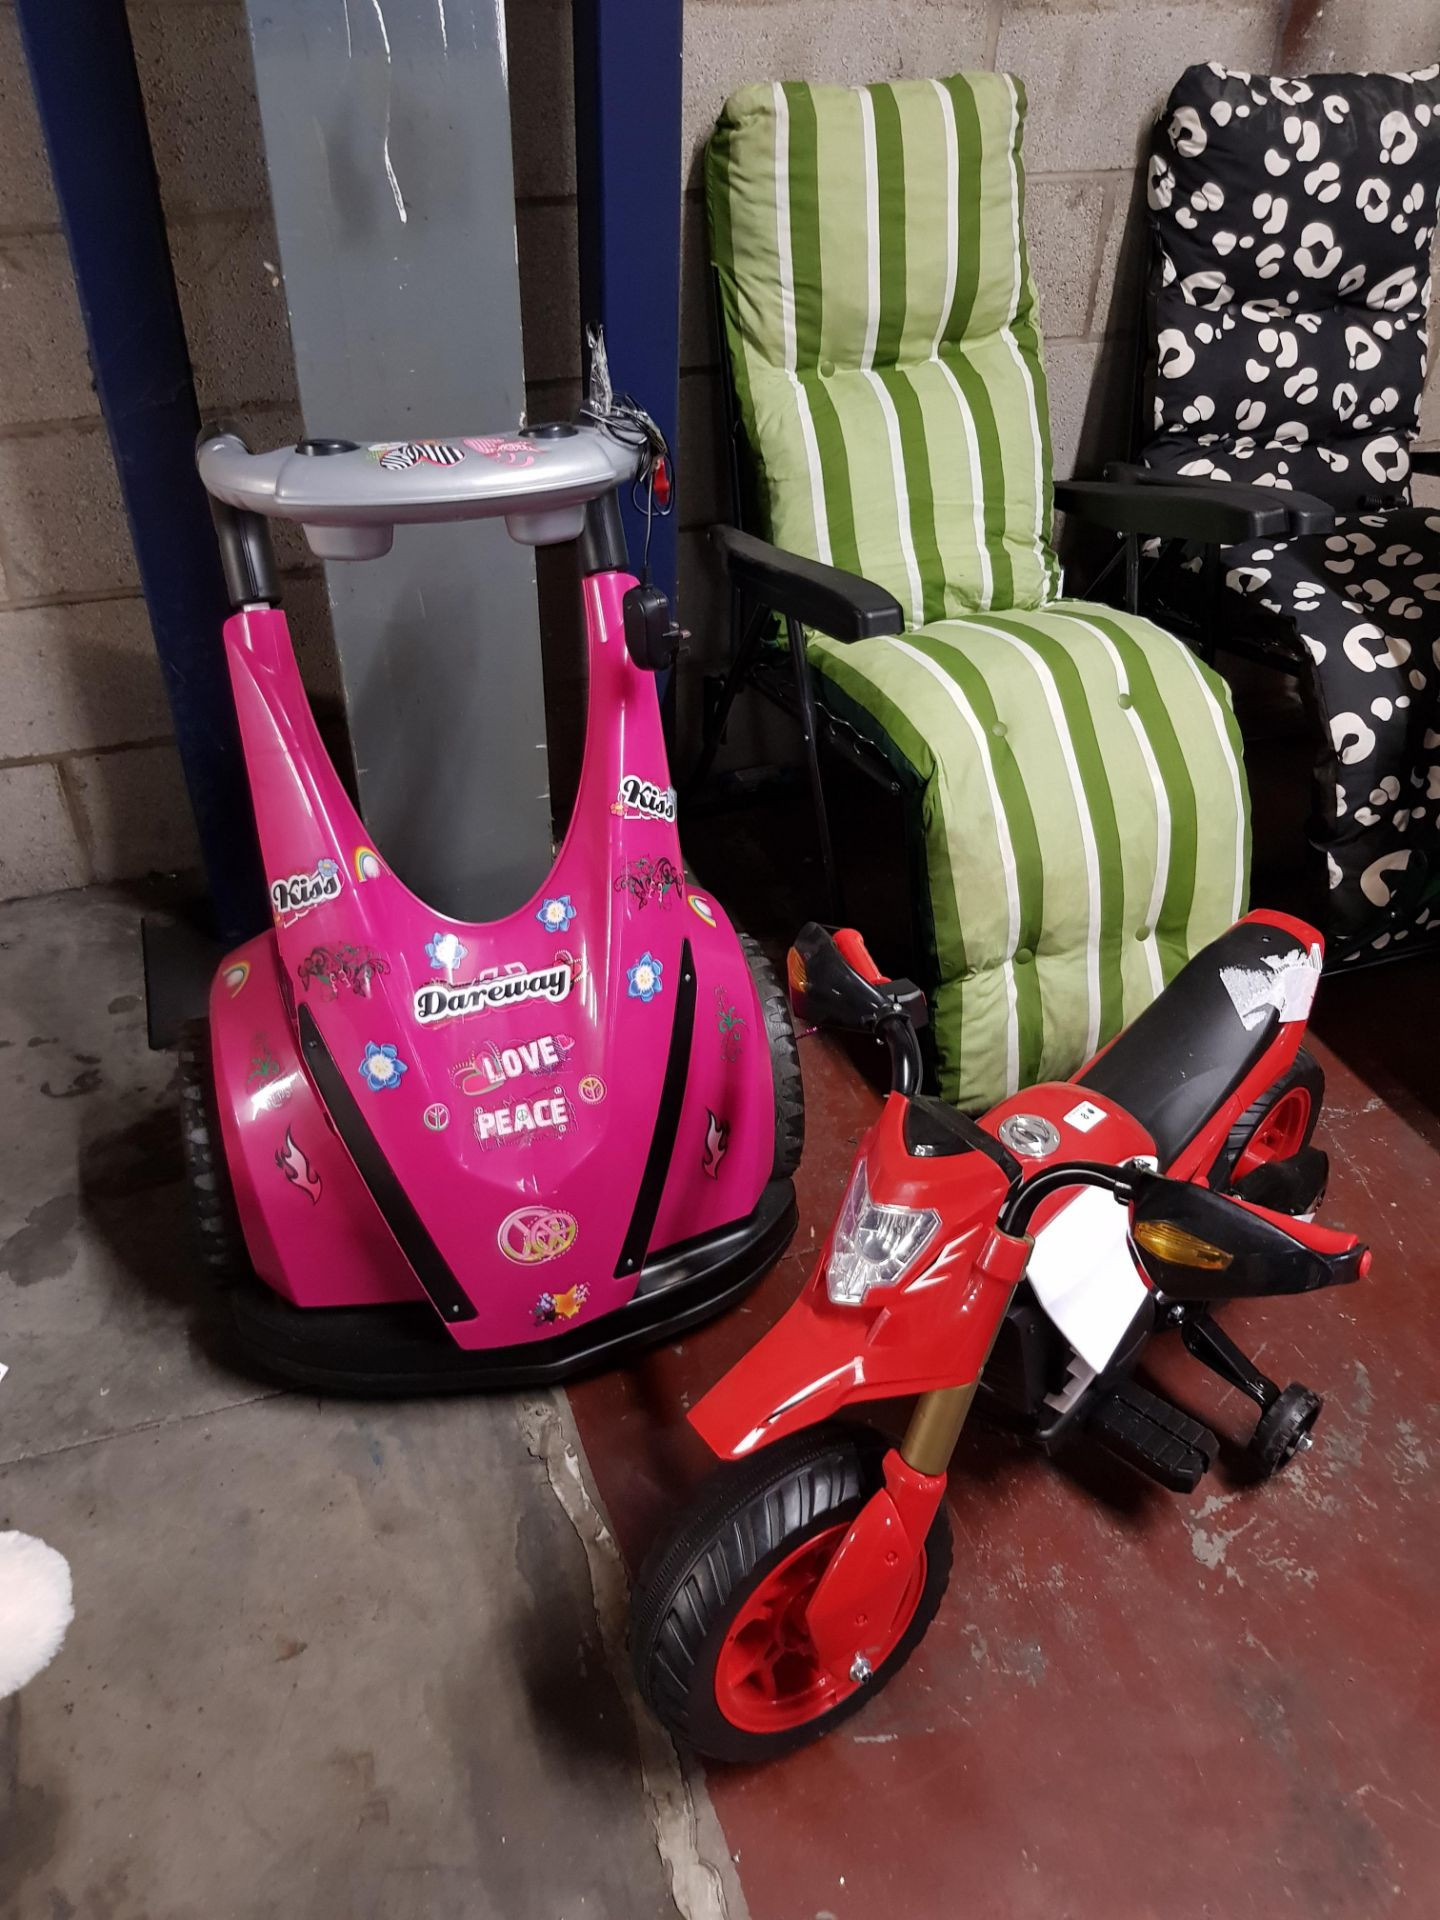 Lot 8 - 2 ITEMS - 1 x DAREWAY KIDS SEGWAY TOY & 1 x ELECTRIC MOTORBIKE WITH SAFETY WHEELS